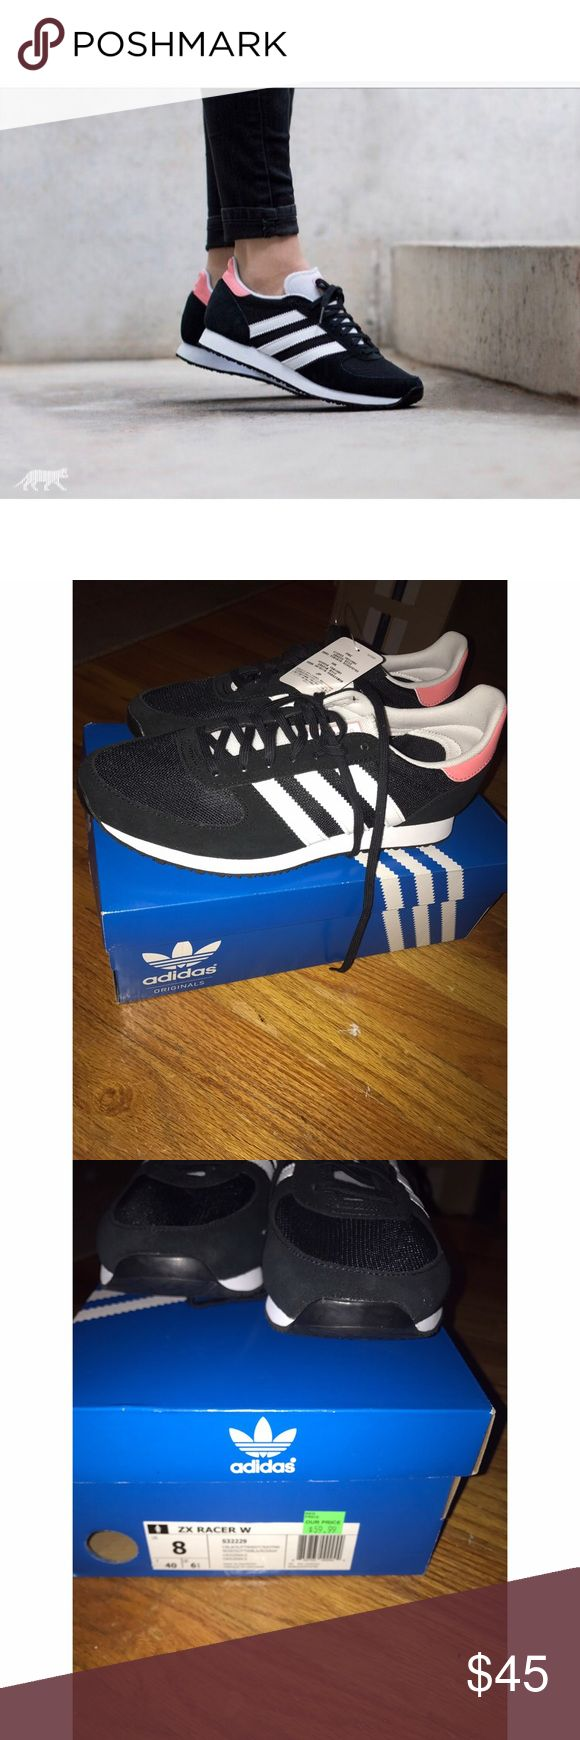 Adidas zx racer sneakers Adorable sneakers, size 8, fits true to size. Never been worn! Adidas Shoes Sneakers